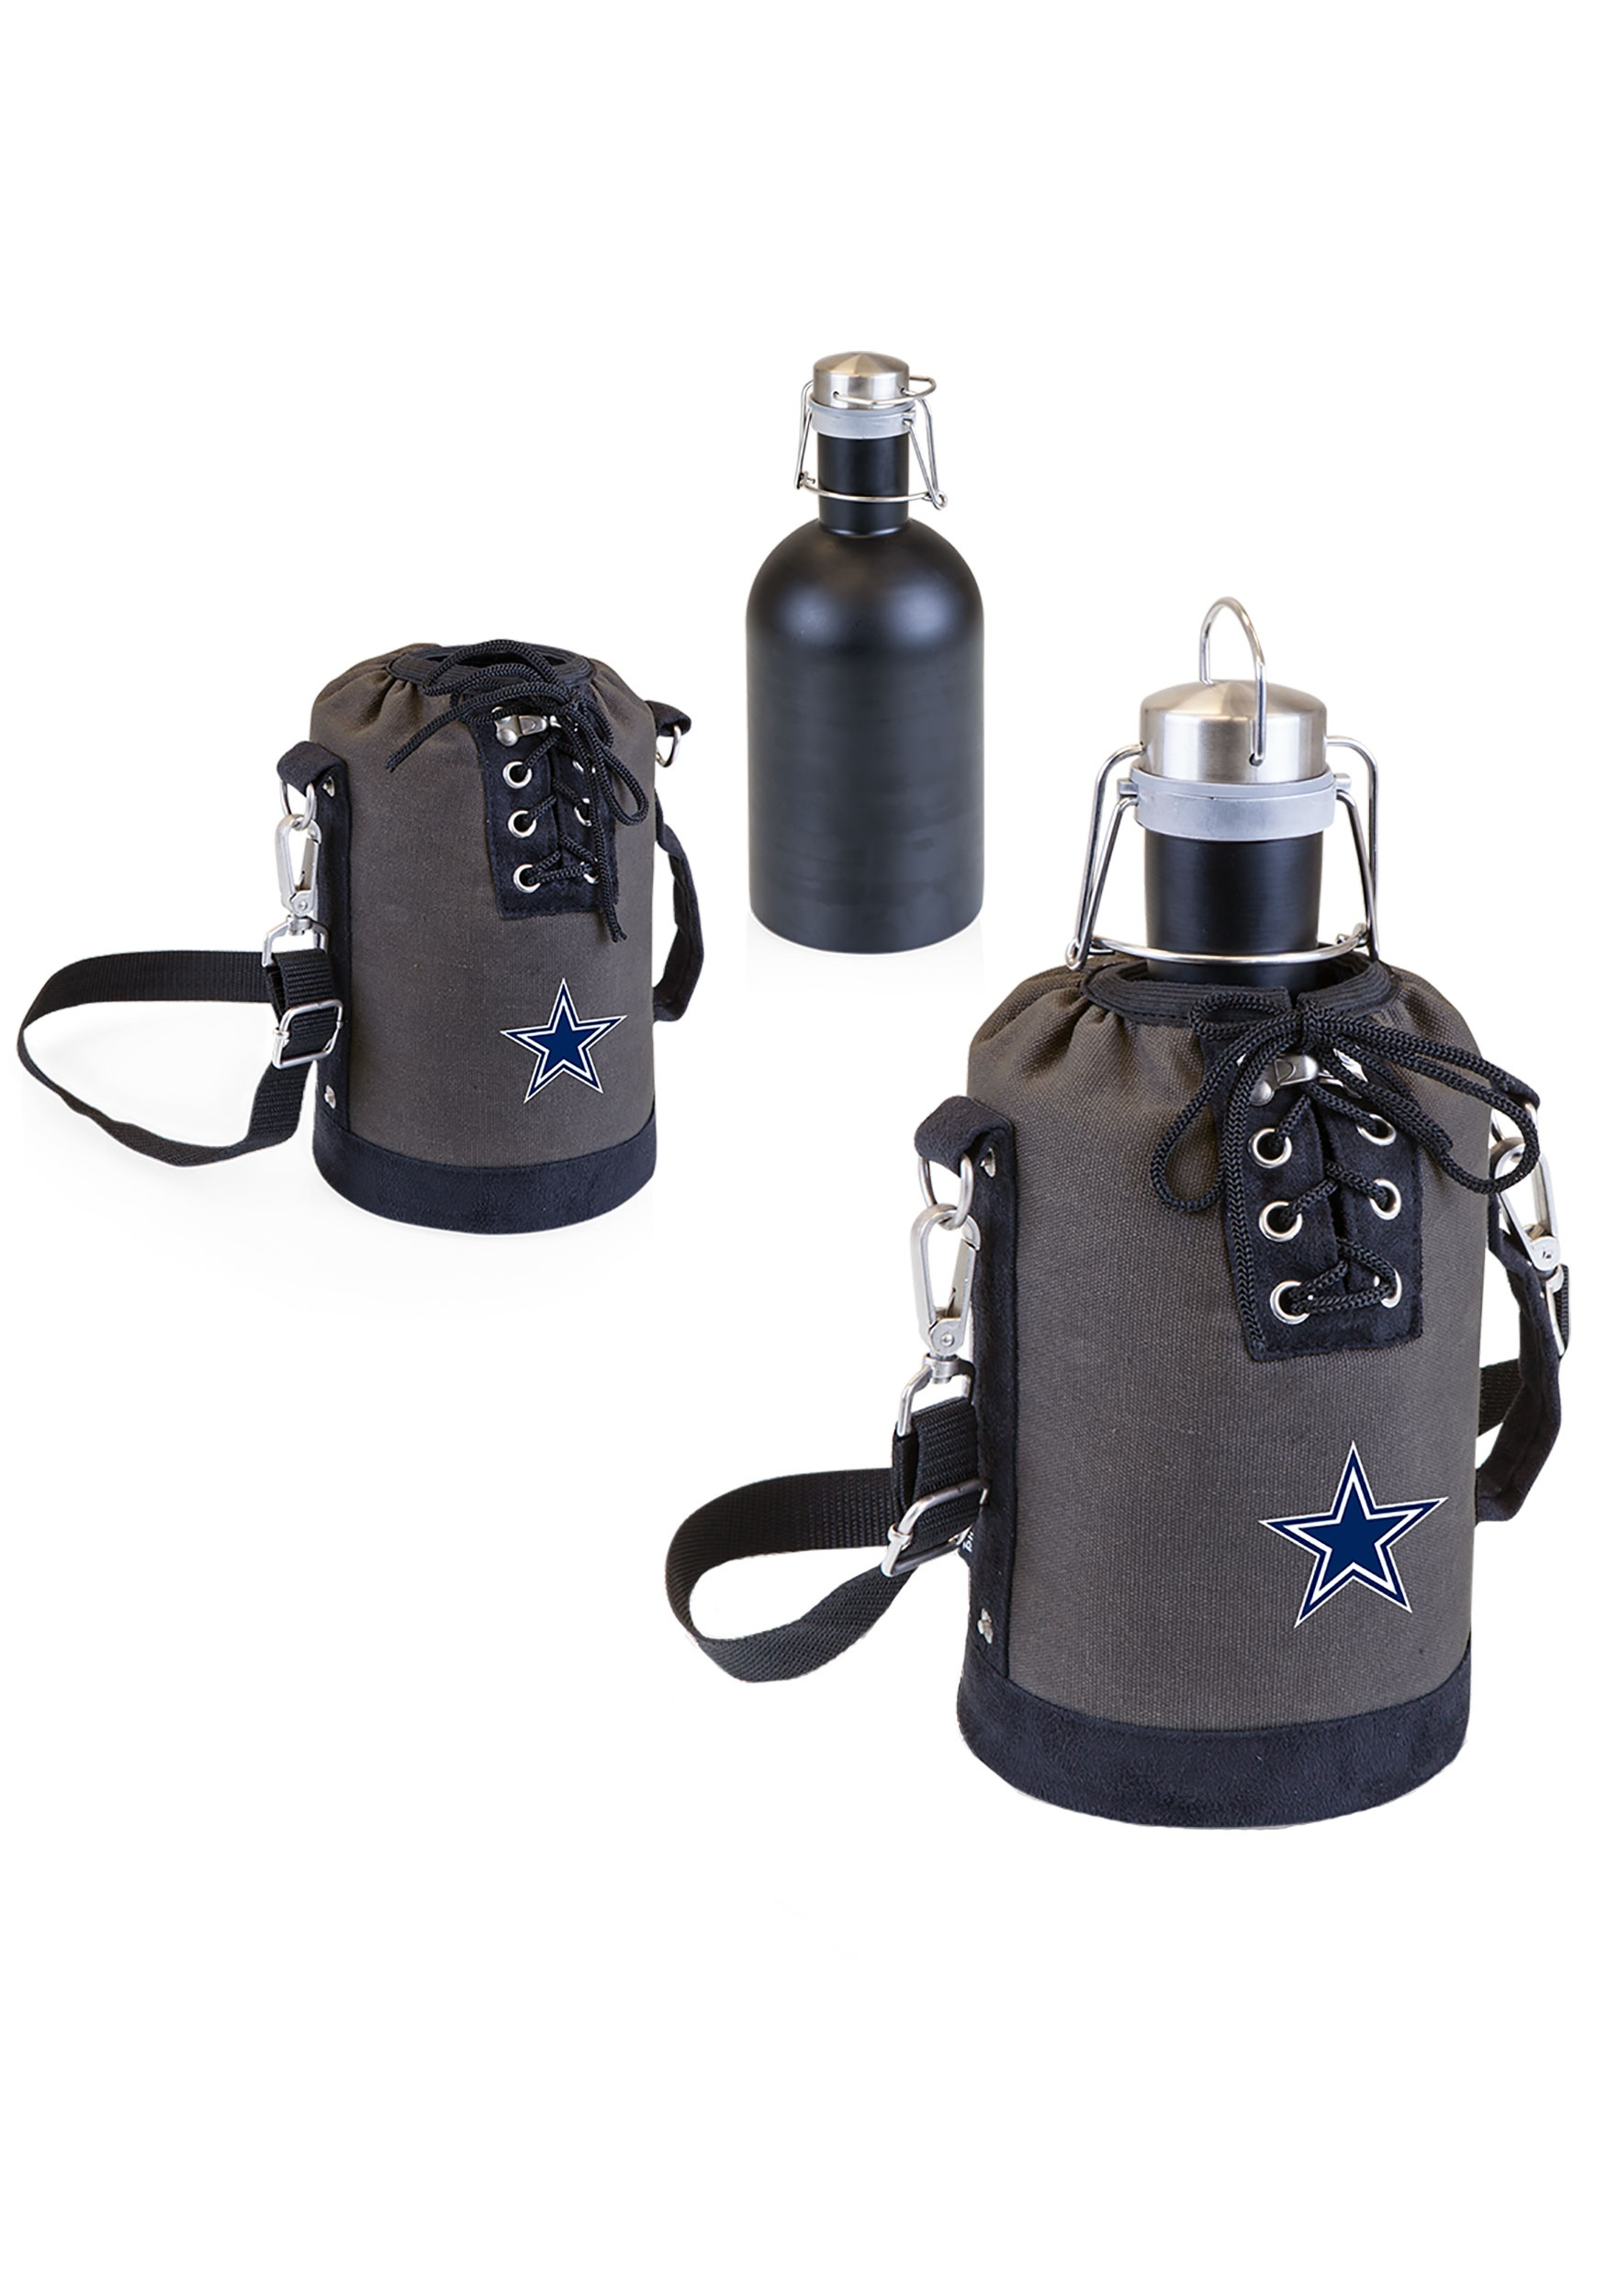 Dallas Cowboys Growler NFL Tote w/ Stainless Steel Growler